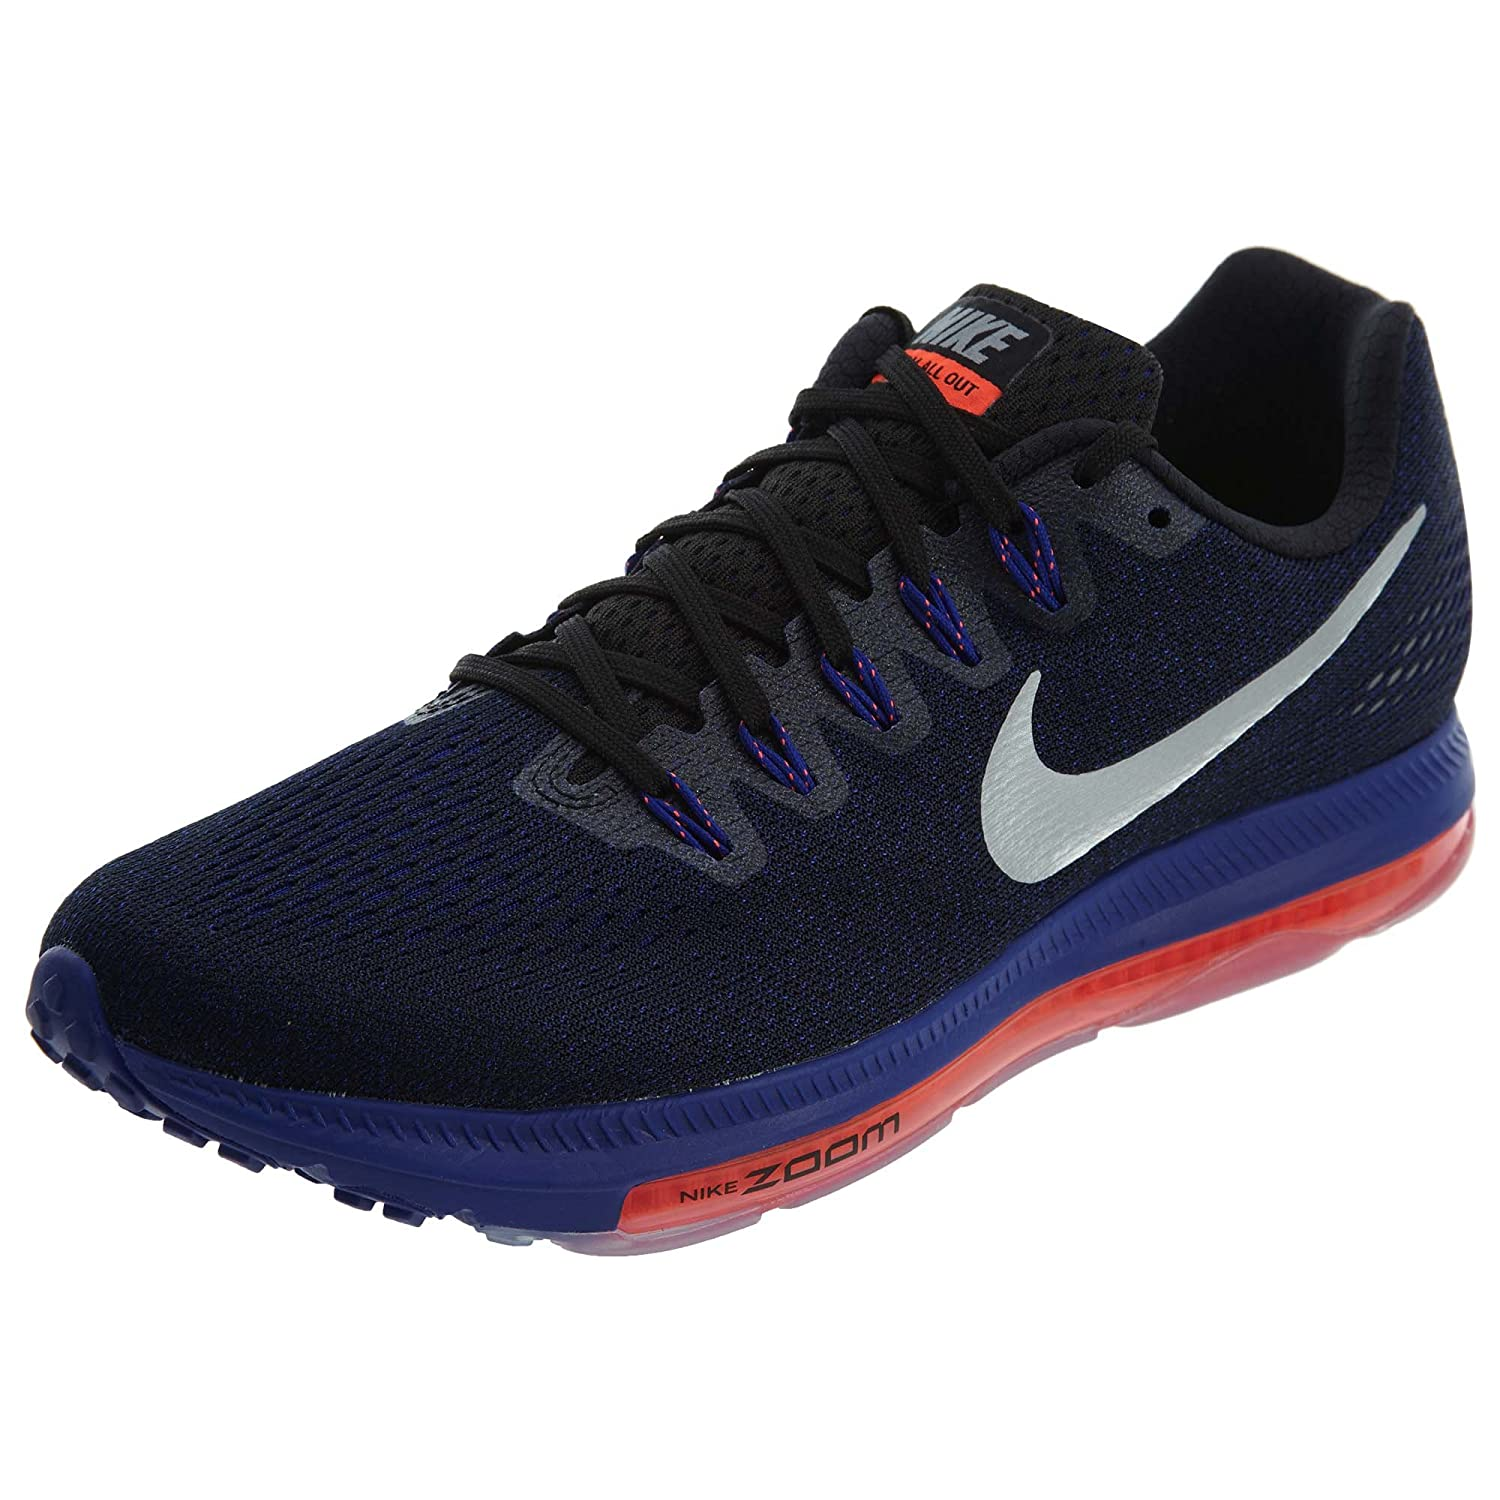 NIKE Zoom All Out Low Men's Running Sneaker B075X169YP 11.5 D(M) US|Black/Metallic Silver/Concord